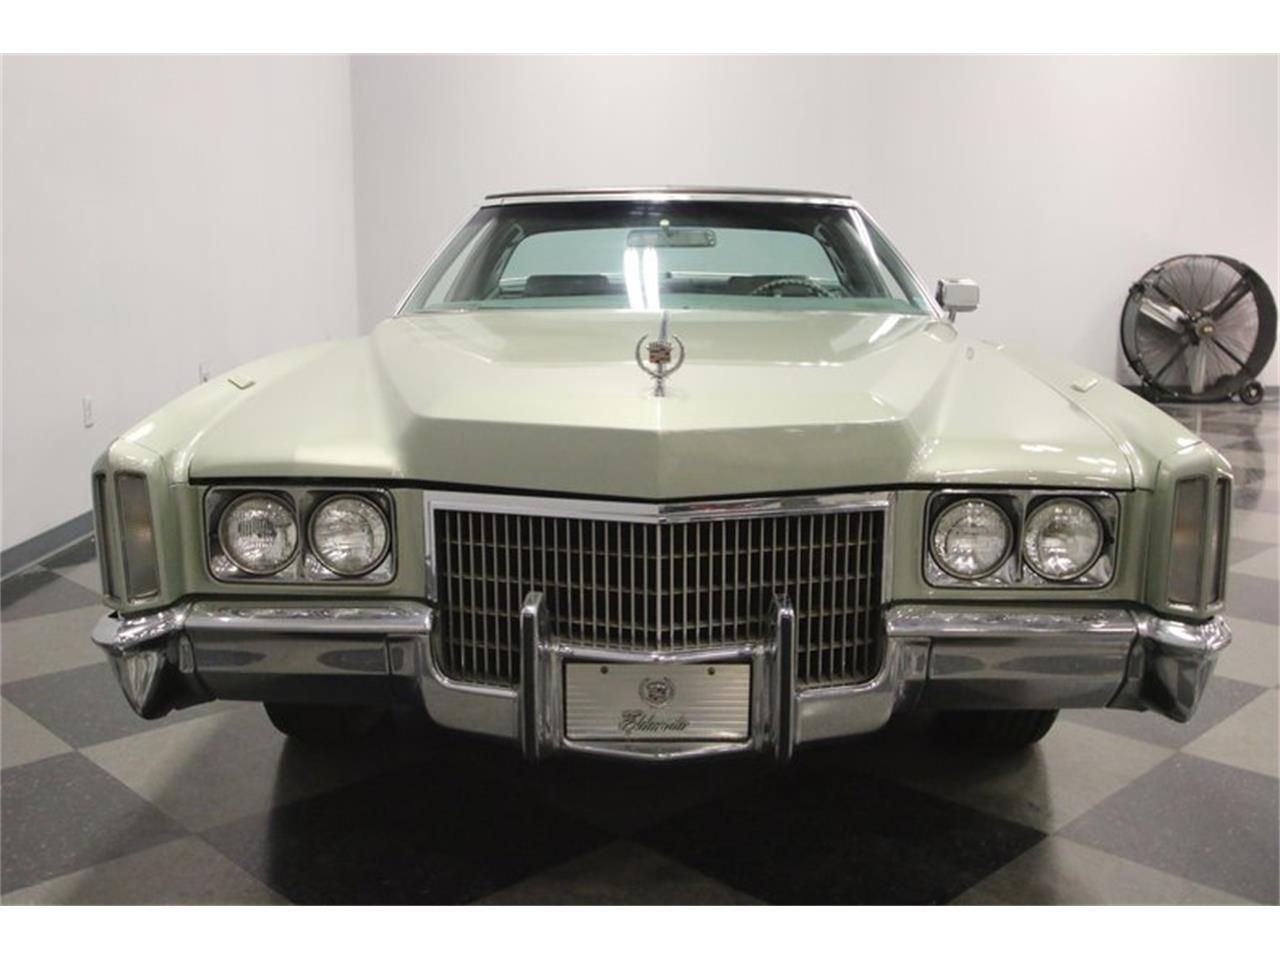 1971 Cadillac Eldorado for sale in Lavergne, TN – photo 19